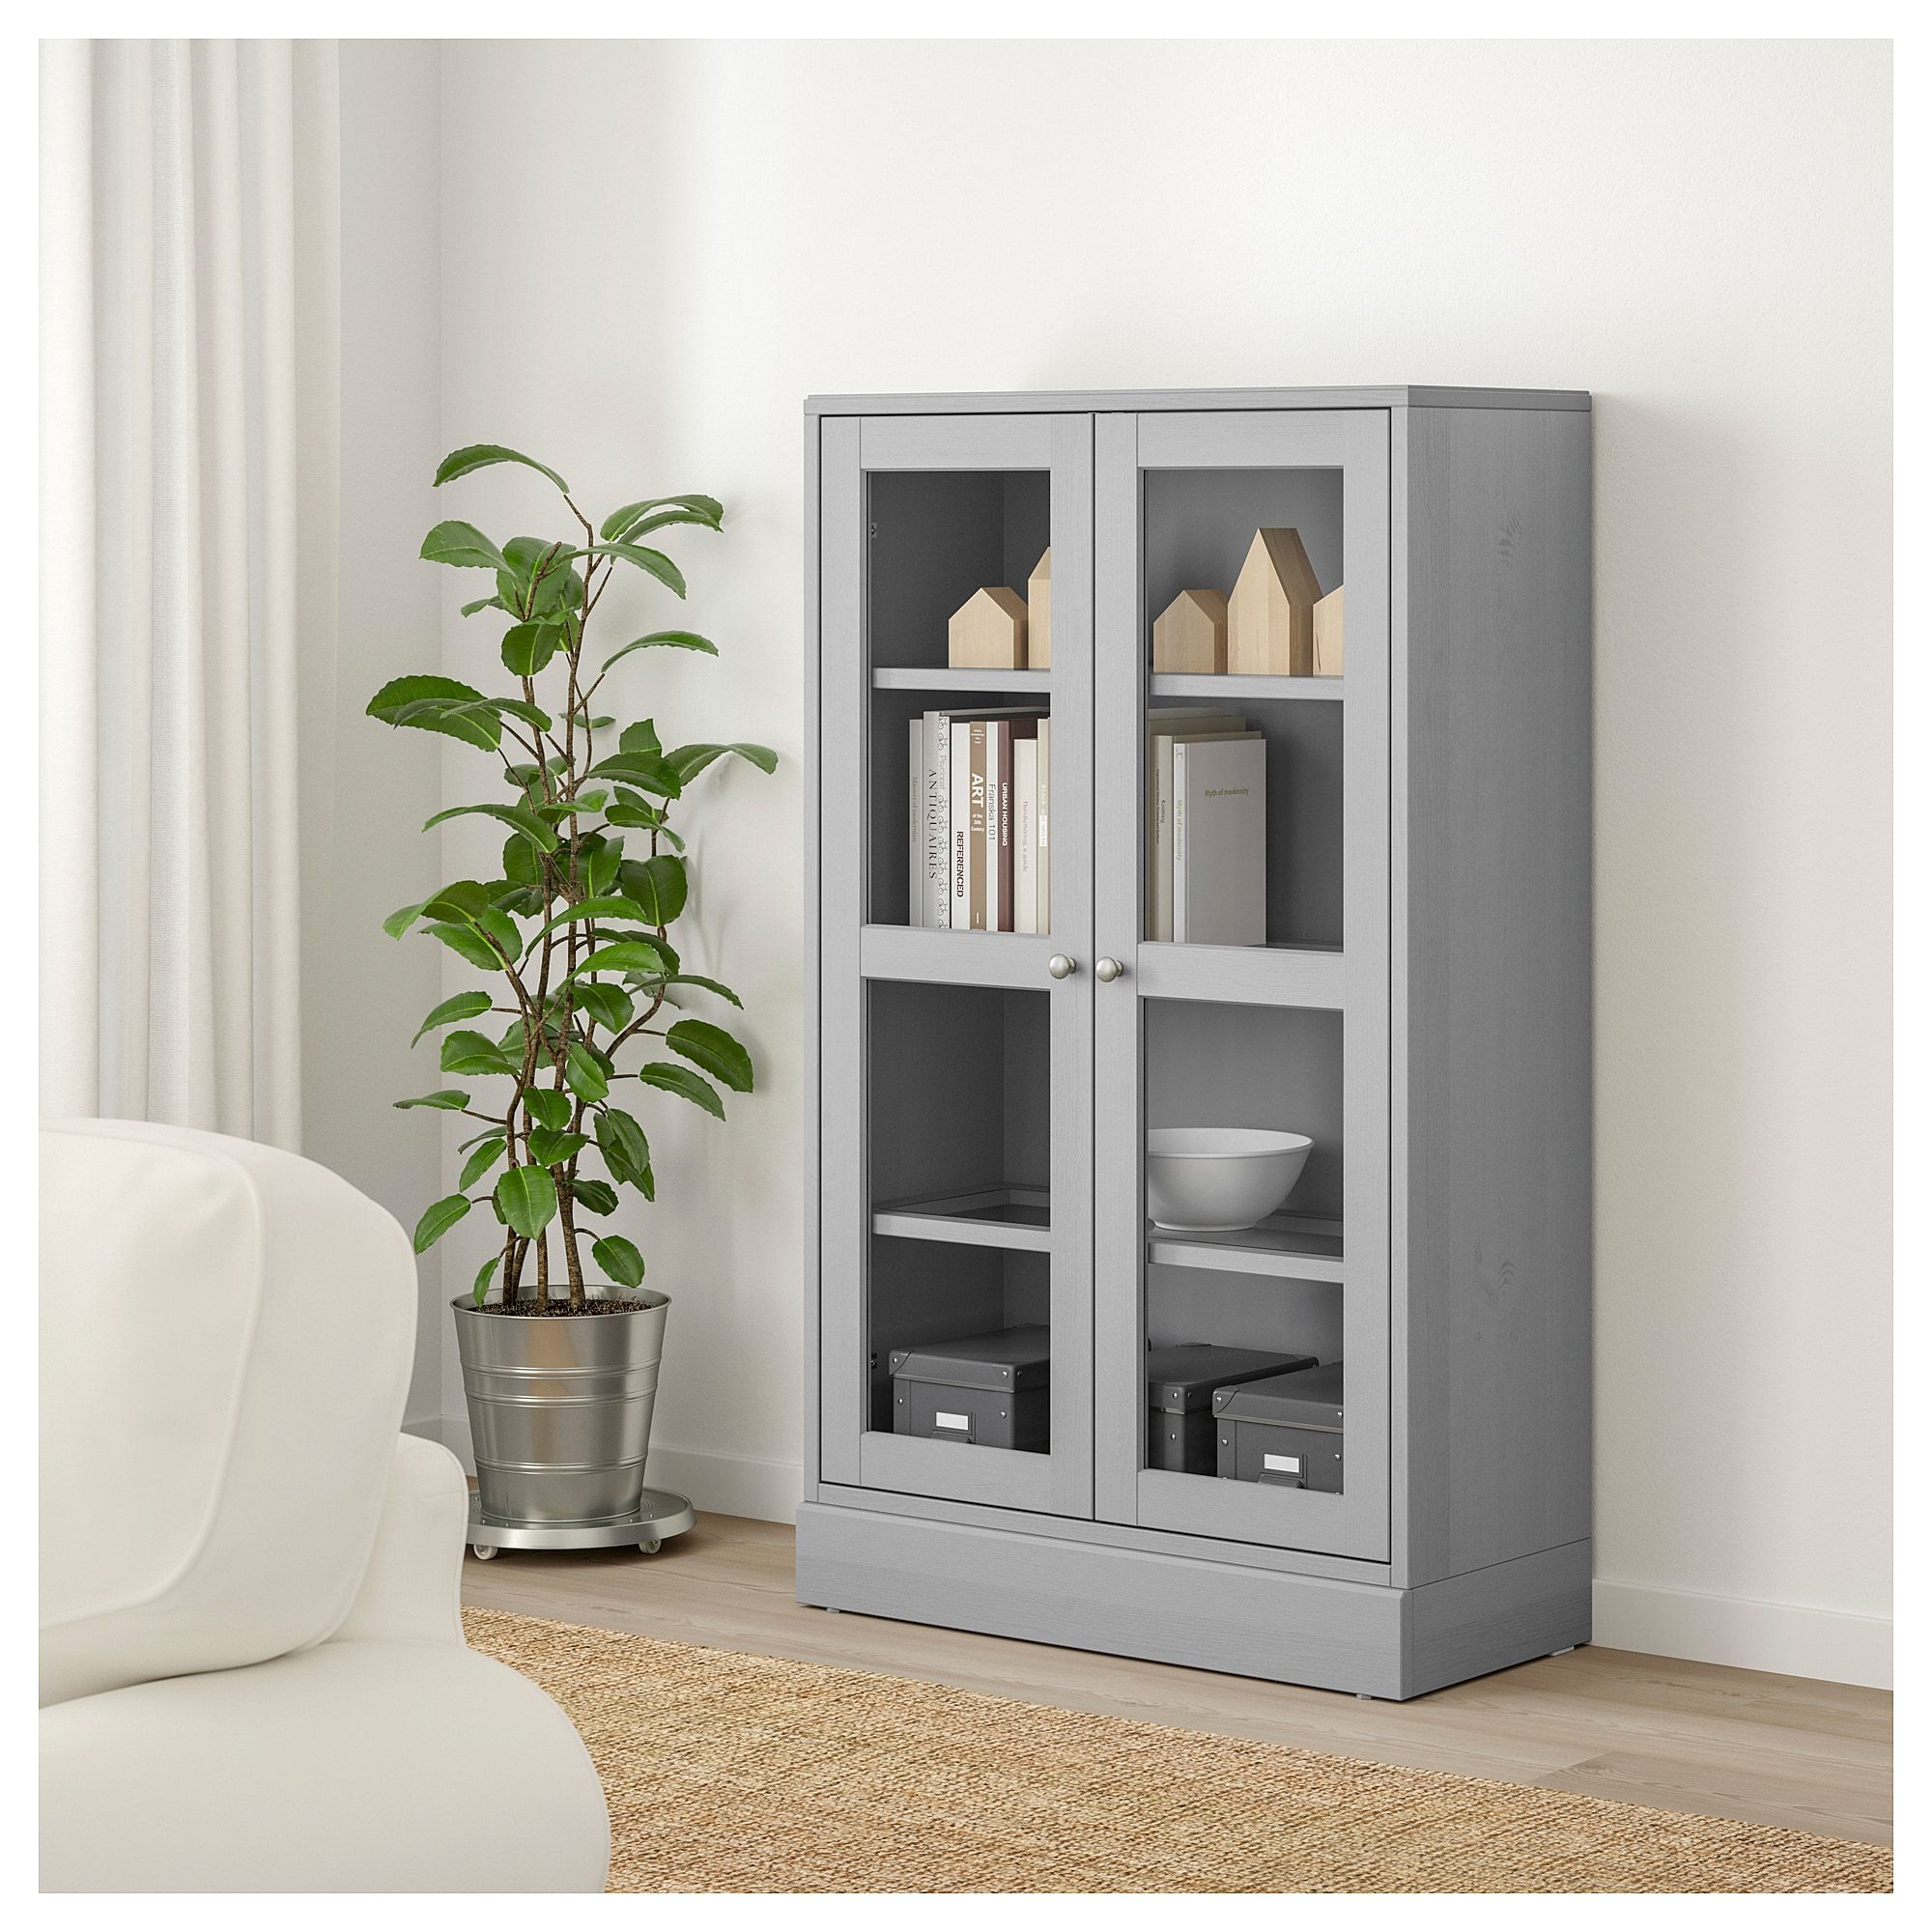 Havsta Glass Door Cabinet With Base Gray Clear Glass 31 7 8x14 5 8x52 3 4 Ikea In 2020 Glass Cabinet Doors Glass Door Ikea